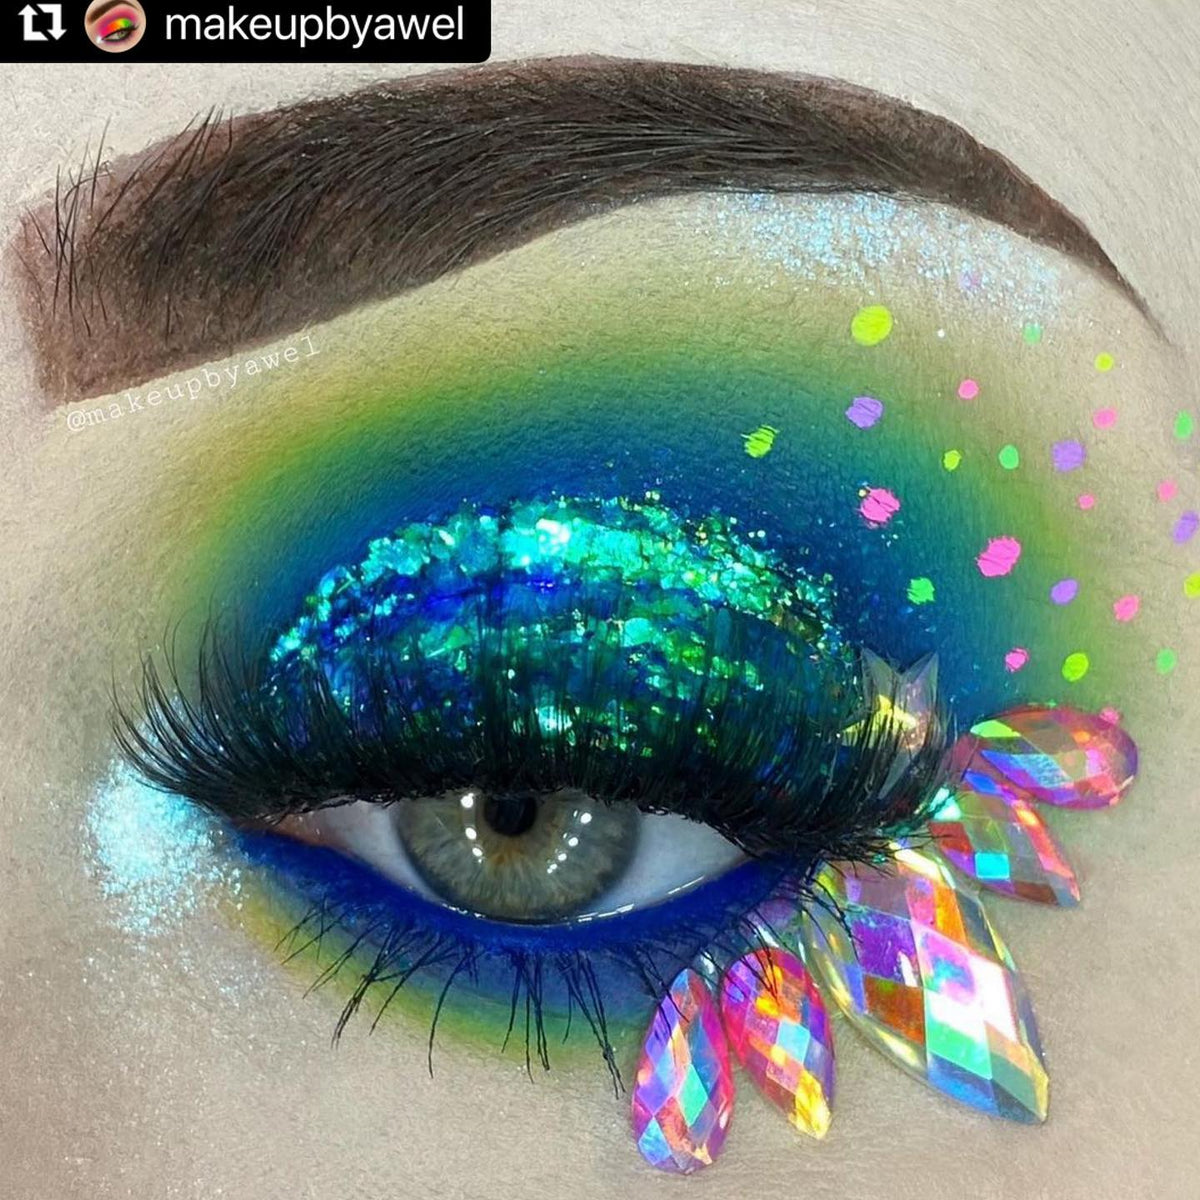 Amazing look awel 😍👏🏼 @makeupbyawel...